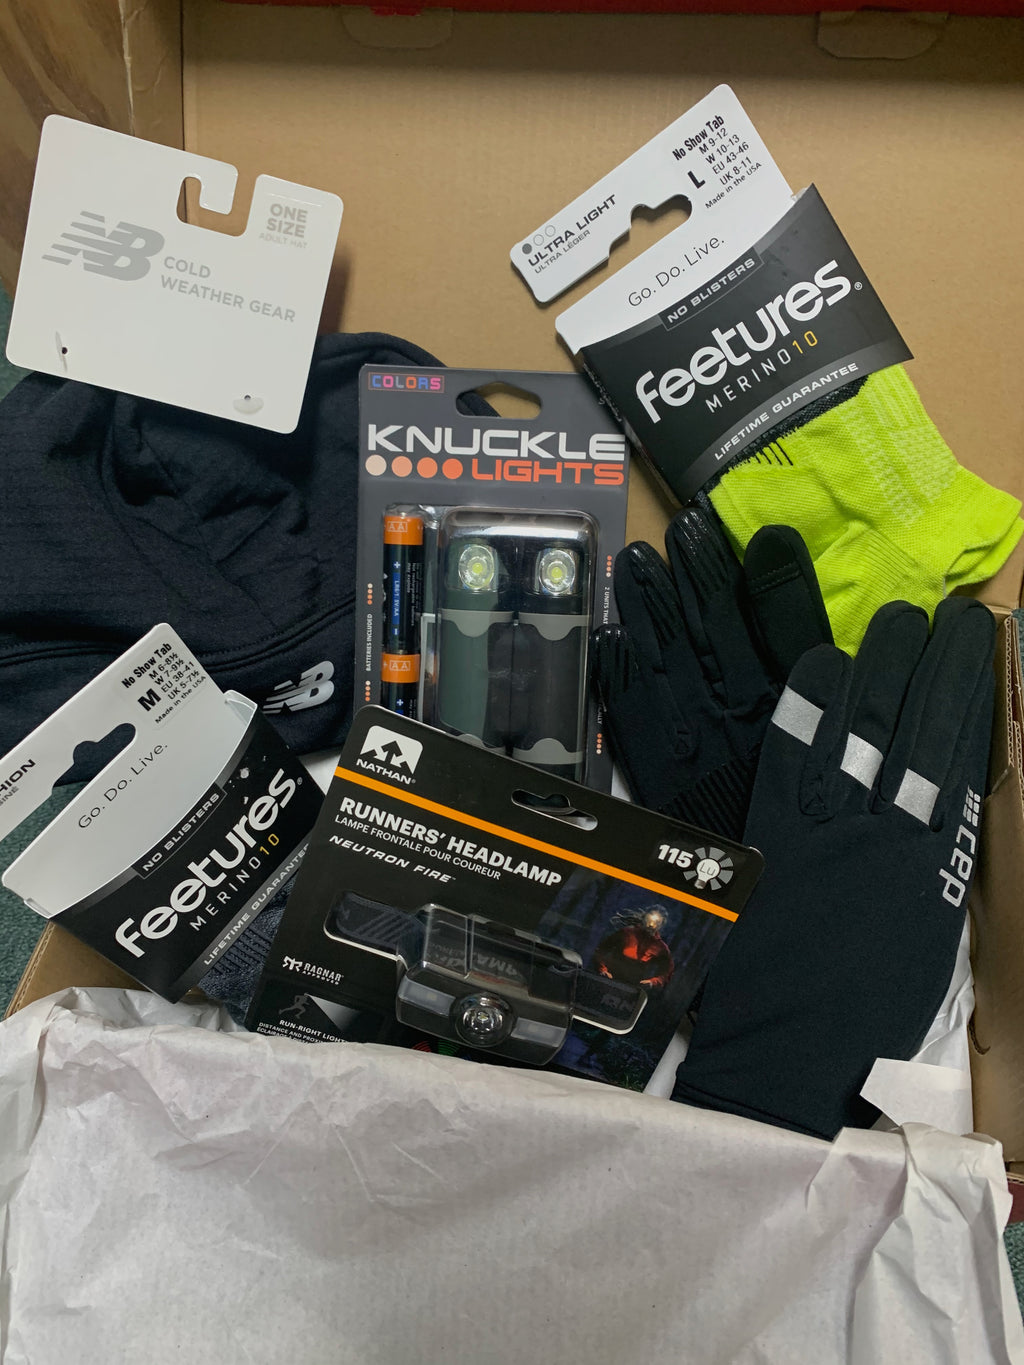 Christmas gift idea for runners this winter, this box has gloves, a hat, merino wool socks, and either a headlamp or knuckle lights. Perfect for the dark, cold winter months!